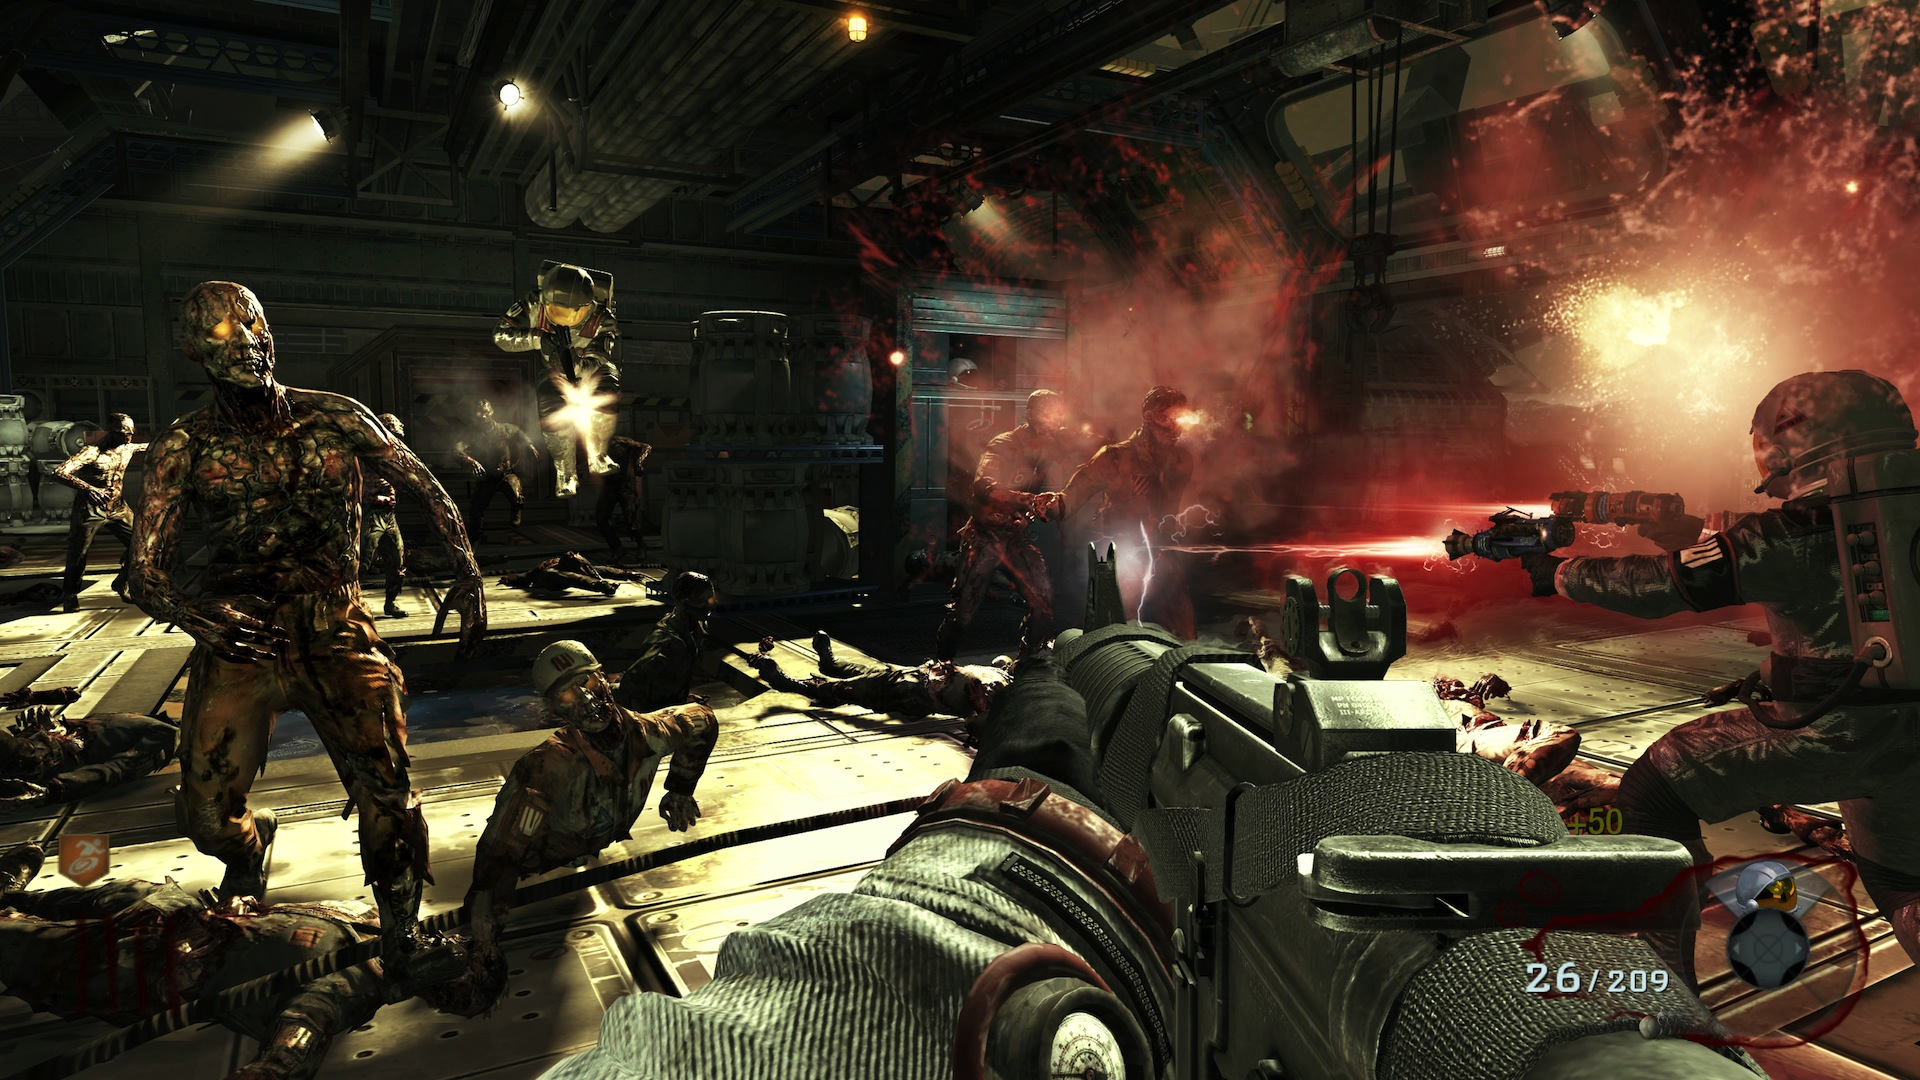 call of duty zombies moon gameplay wallpaper 52277